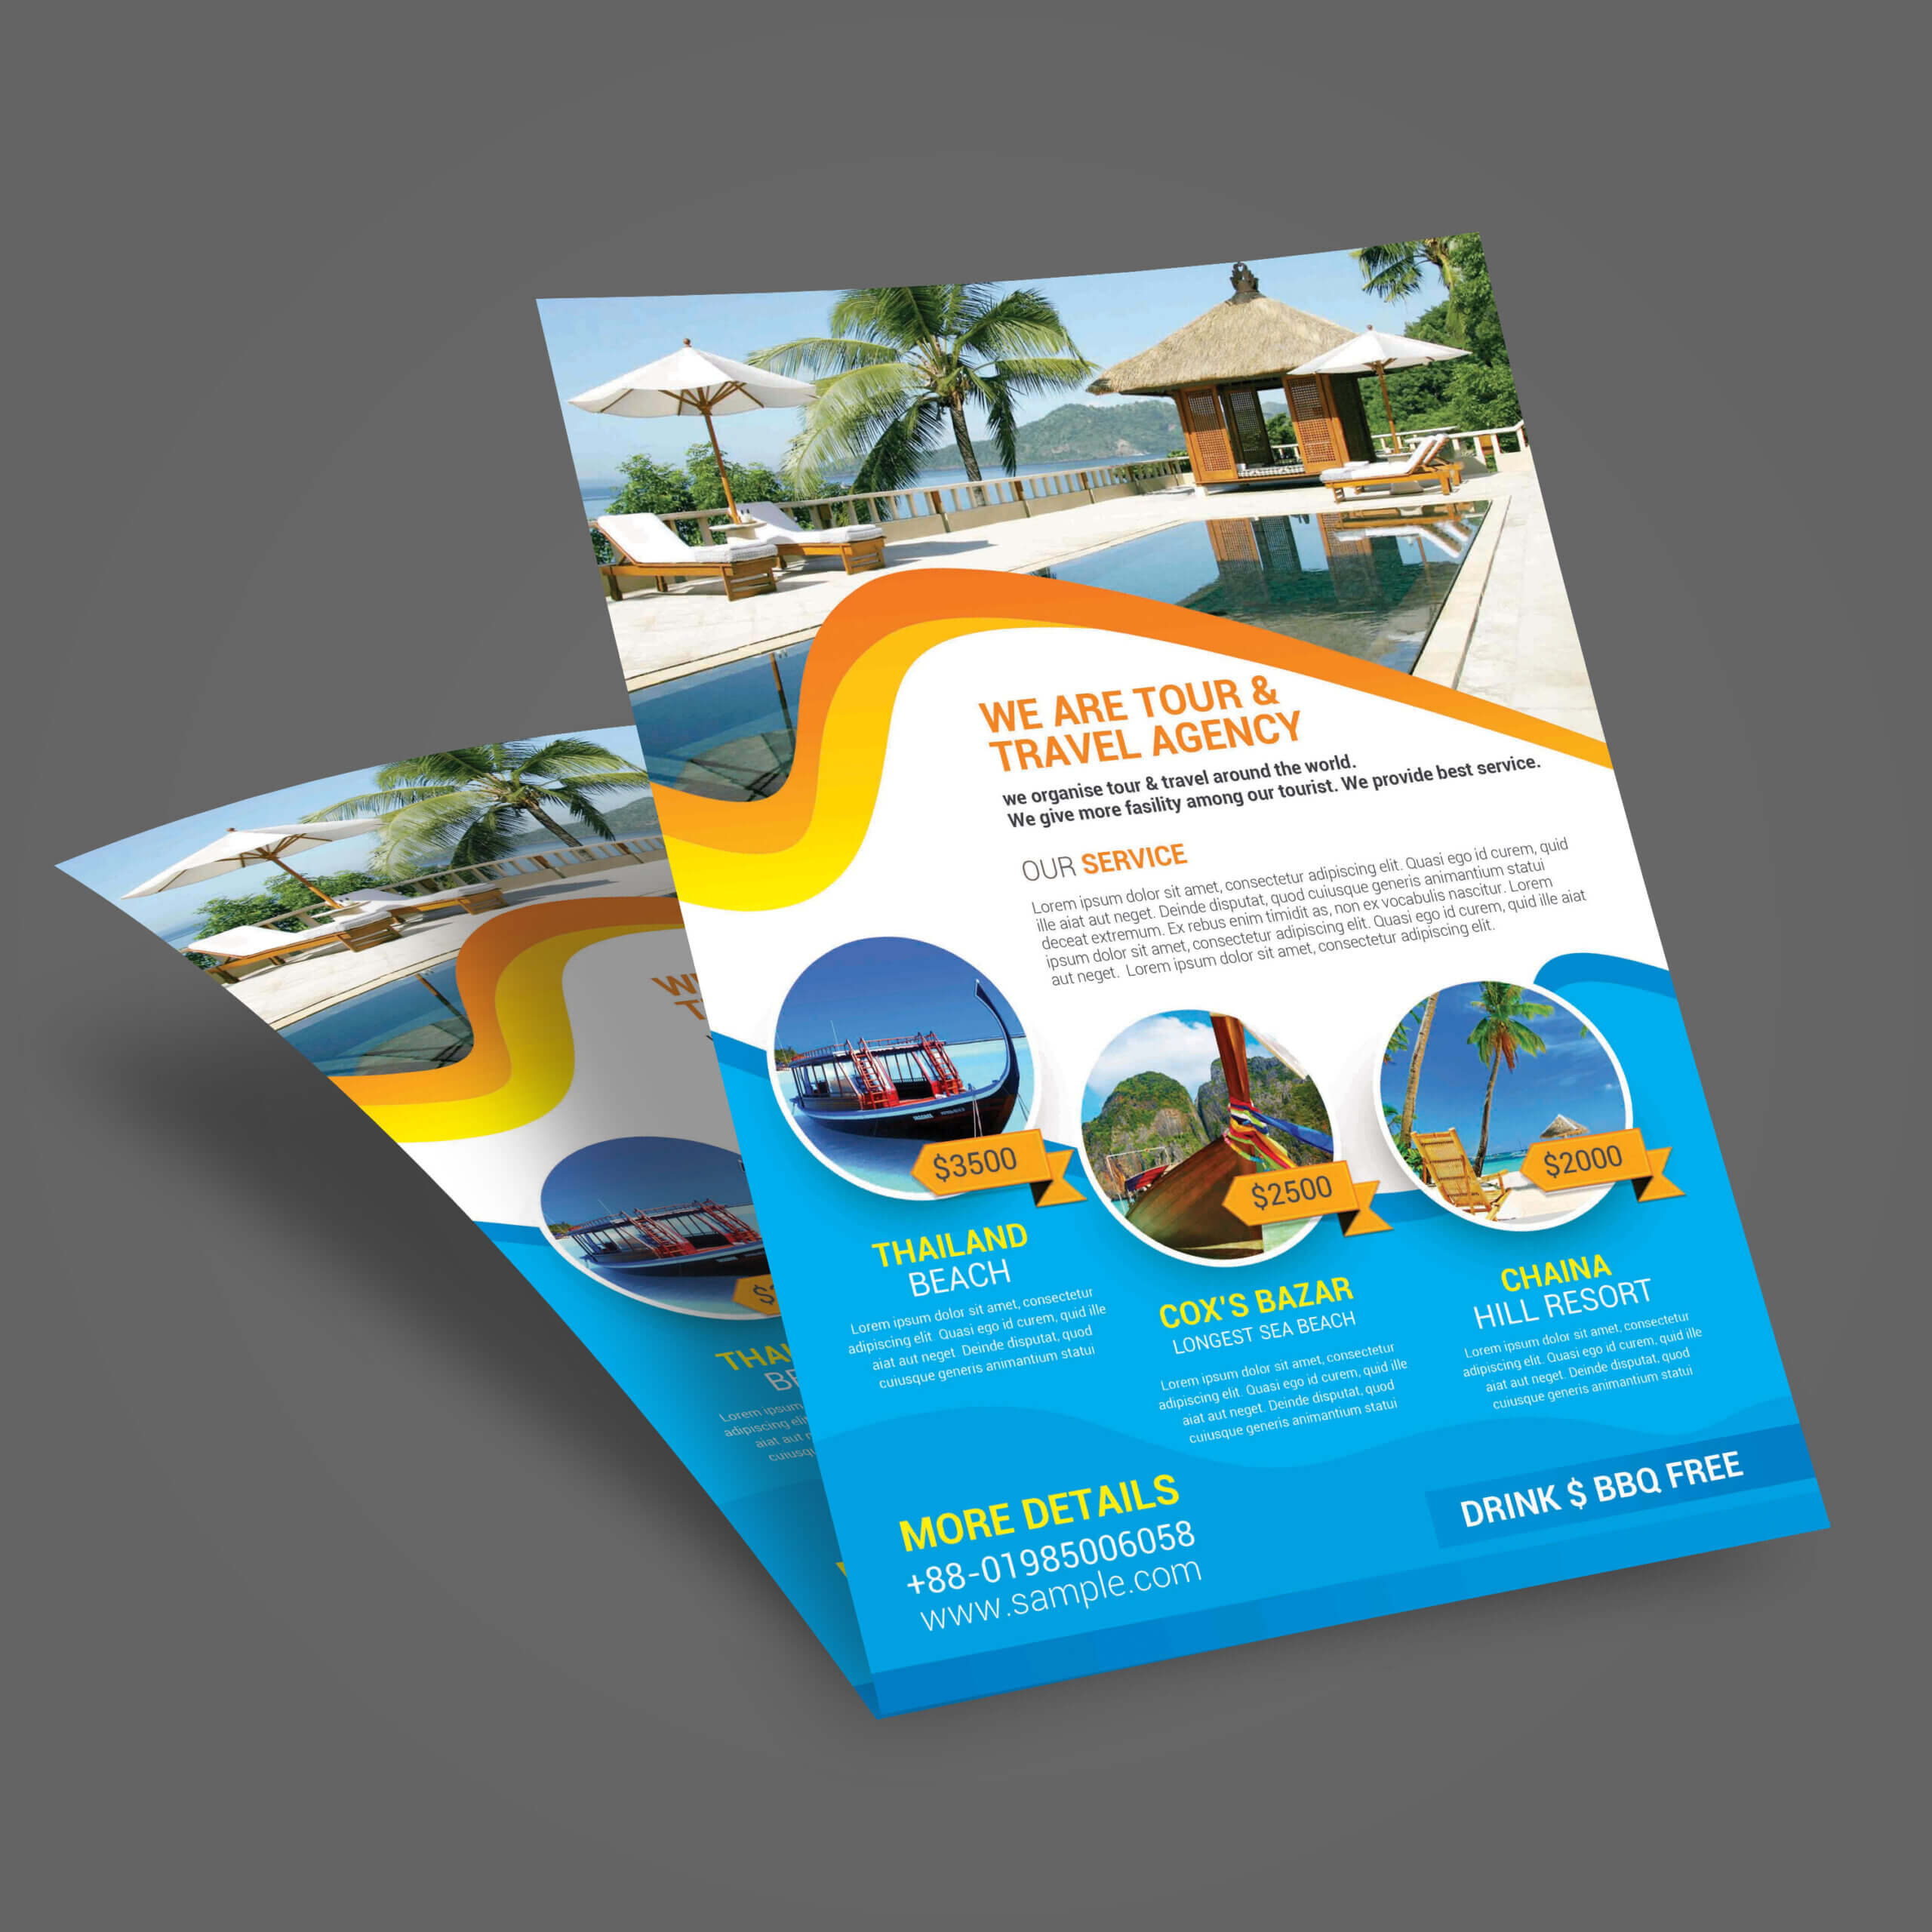 Tour Brochure Template - Calep.midnightpig.co For Travel And Tourism Brochure Templates Free